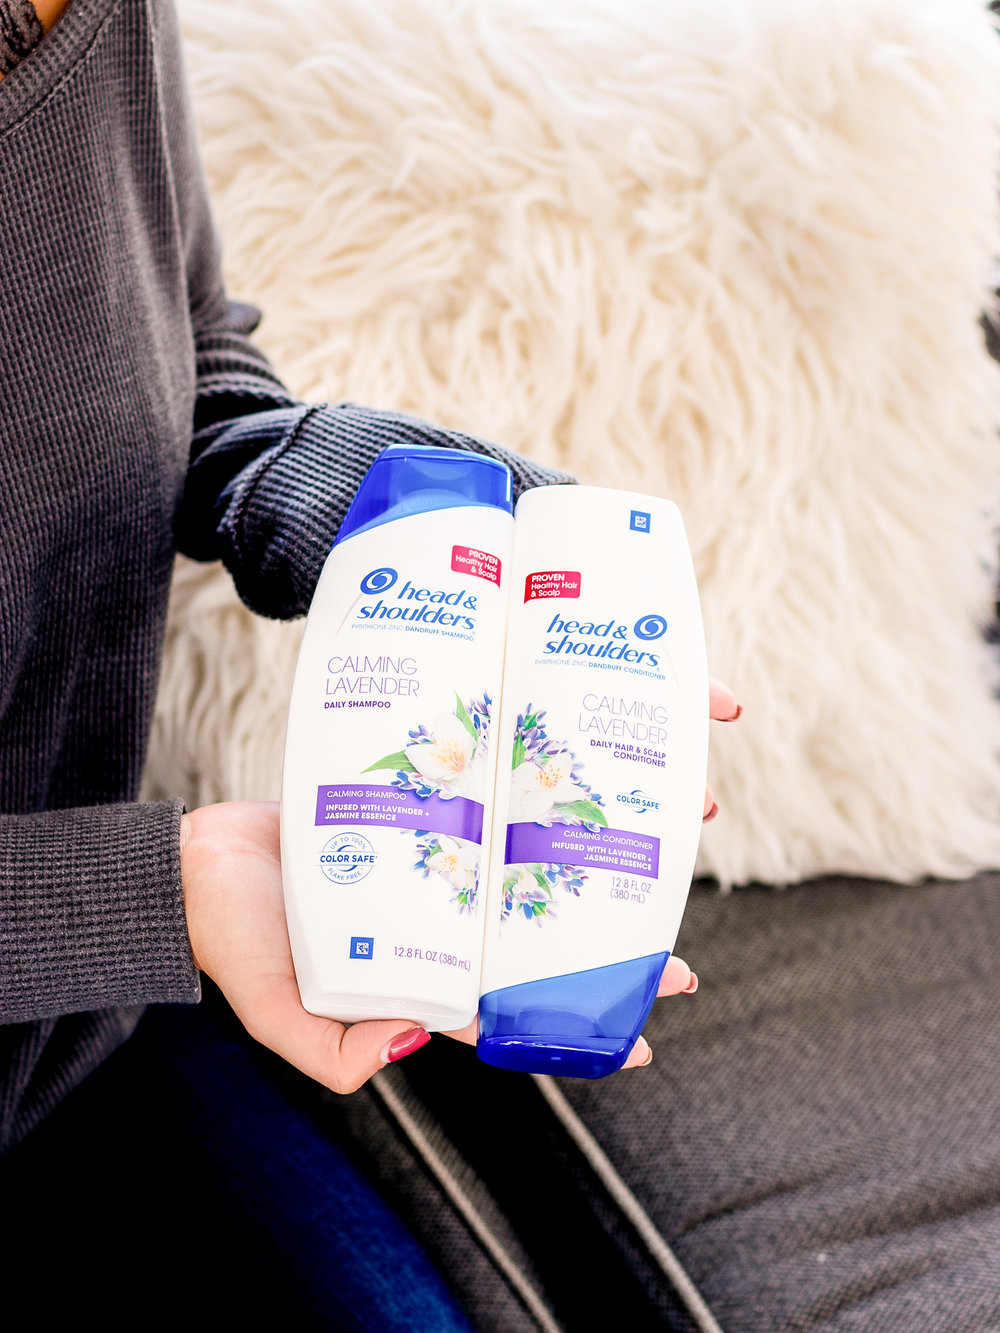 Head & Shoulders Calming Lavender Shampoo and Conditioner